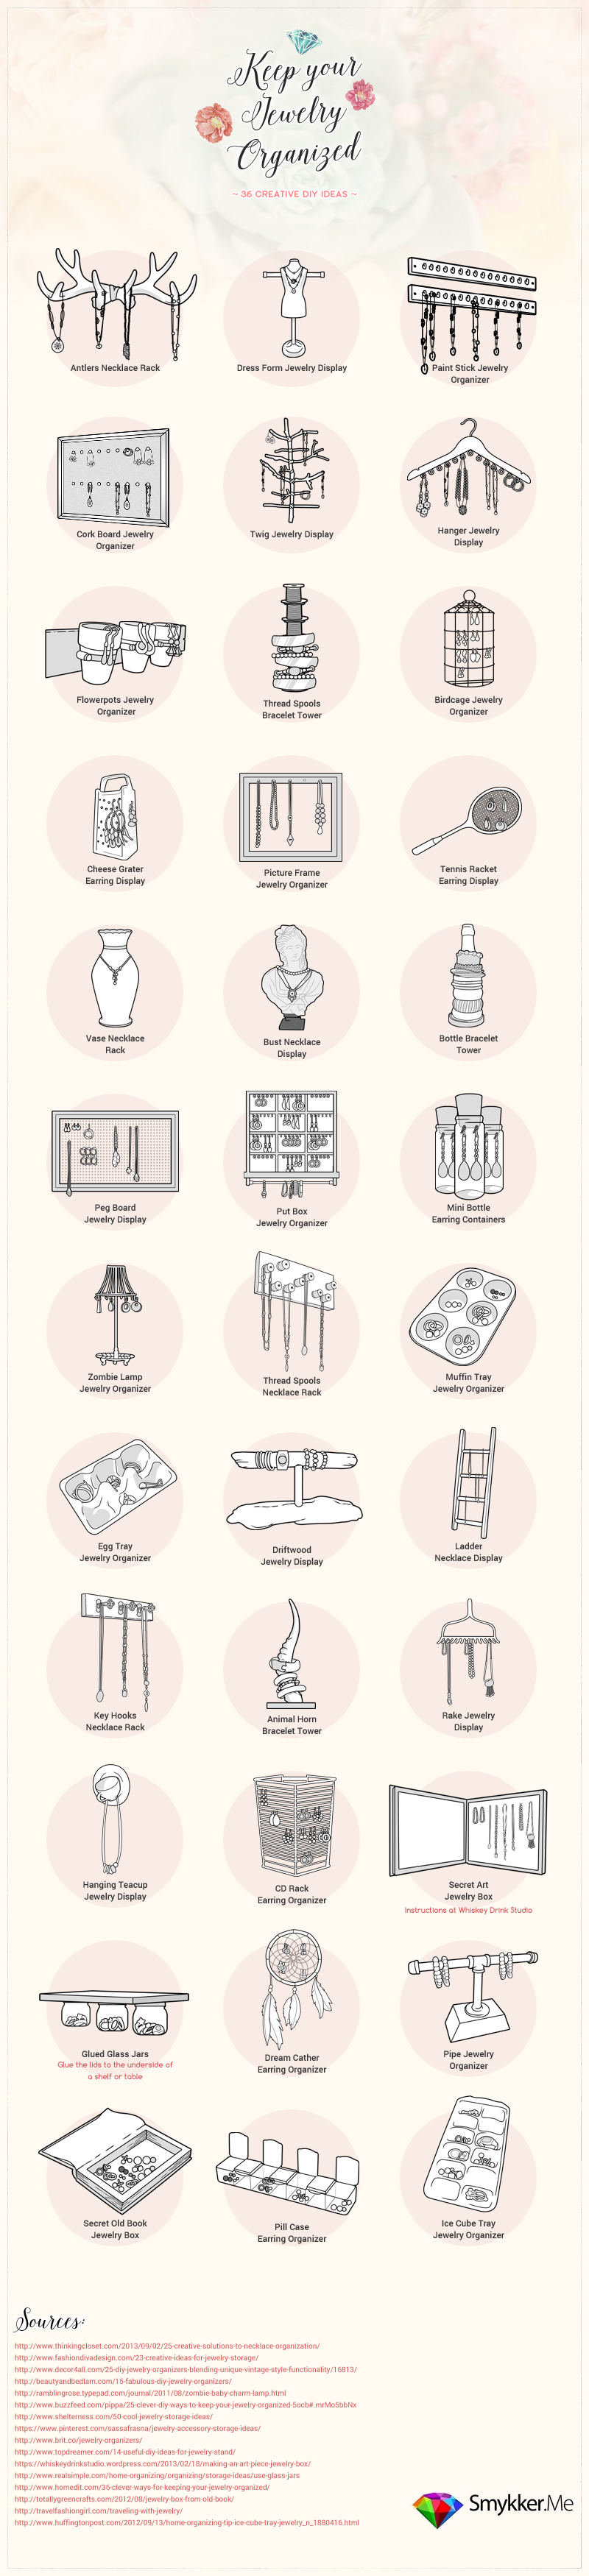 Jewelry Organization DIY.jpg